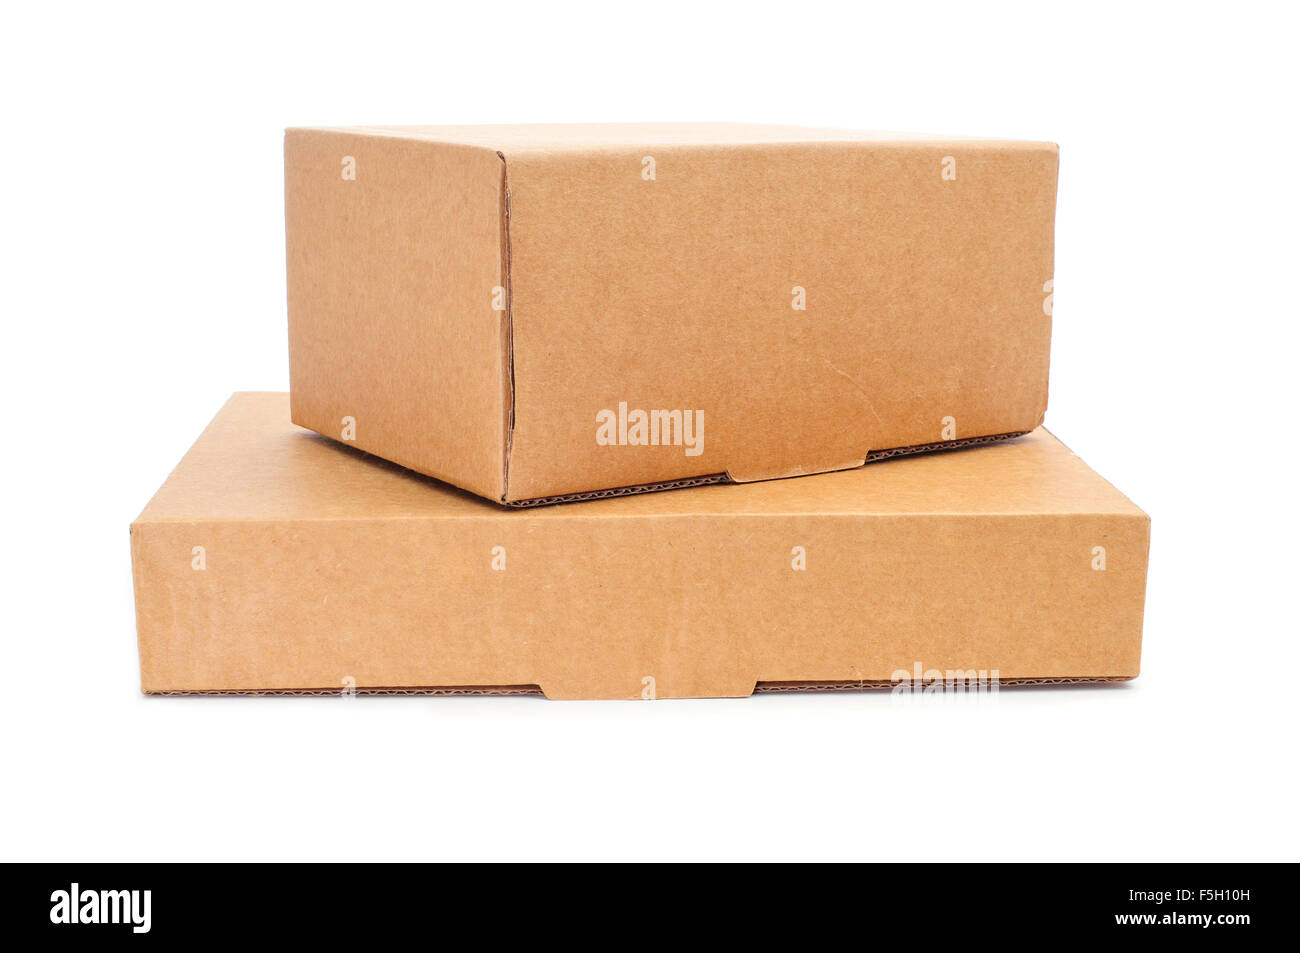 some cardboard boxes of different sizes on a white background - Stock Image